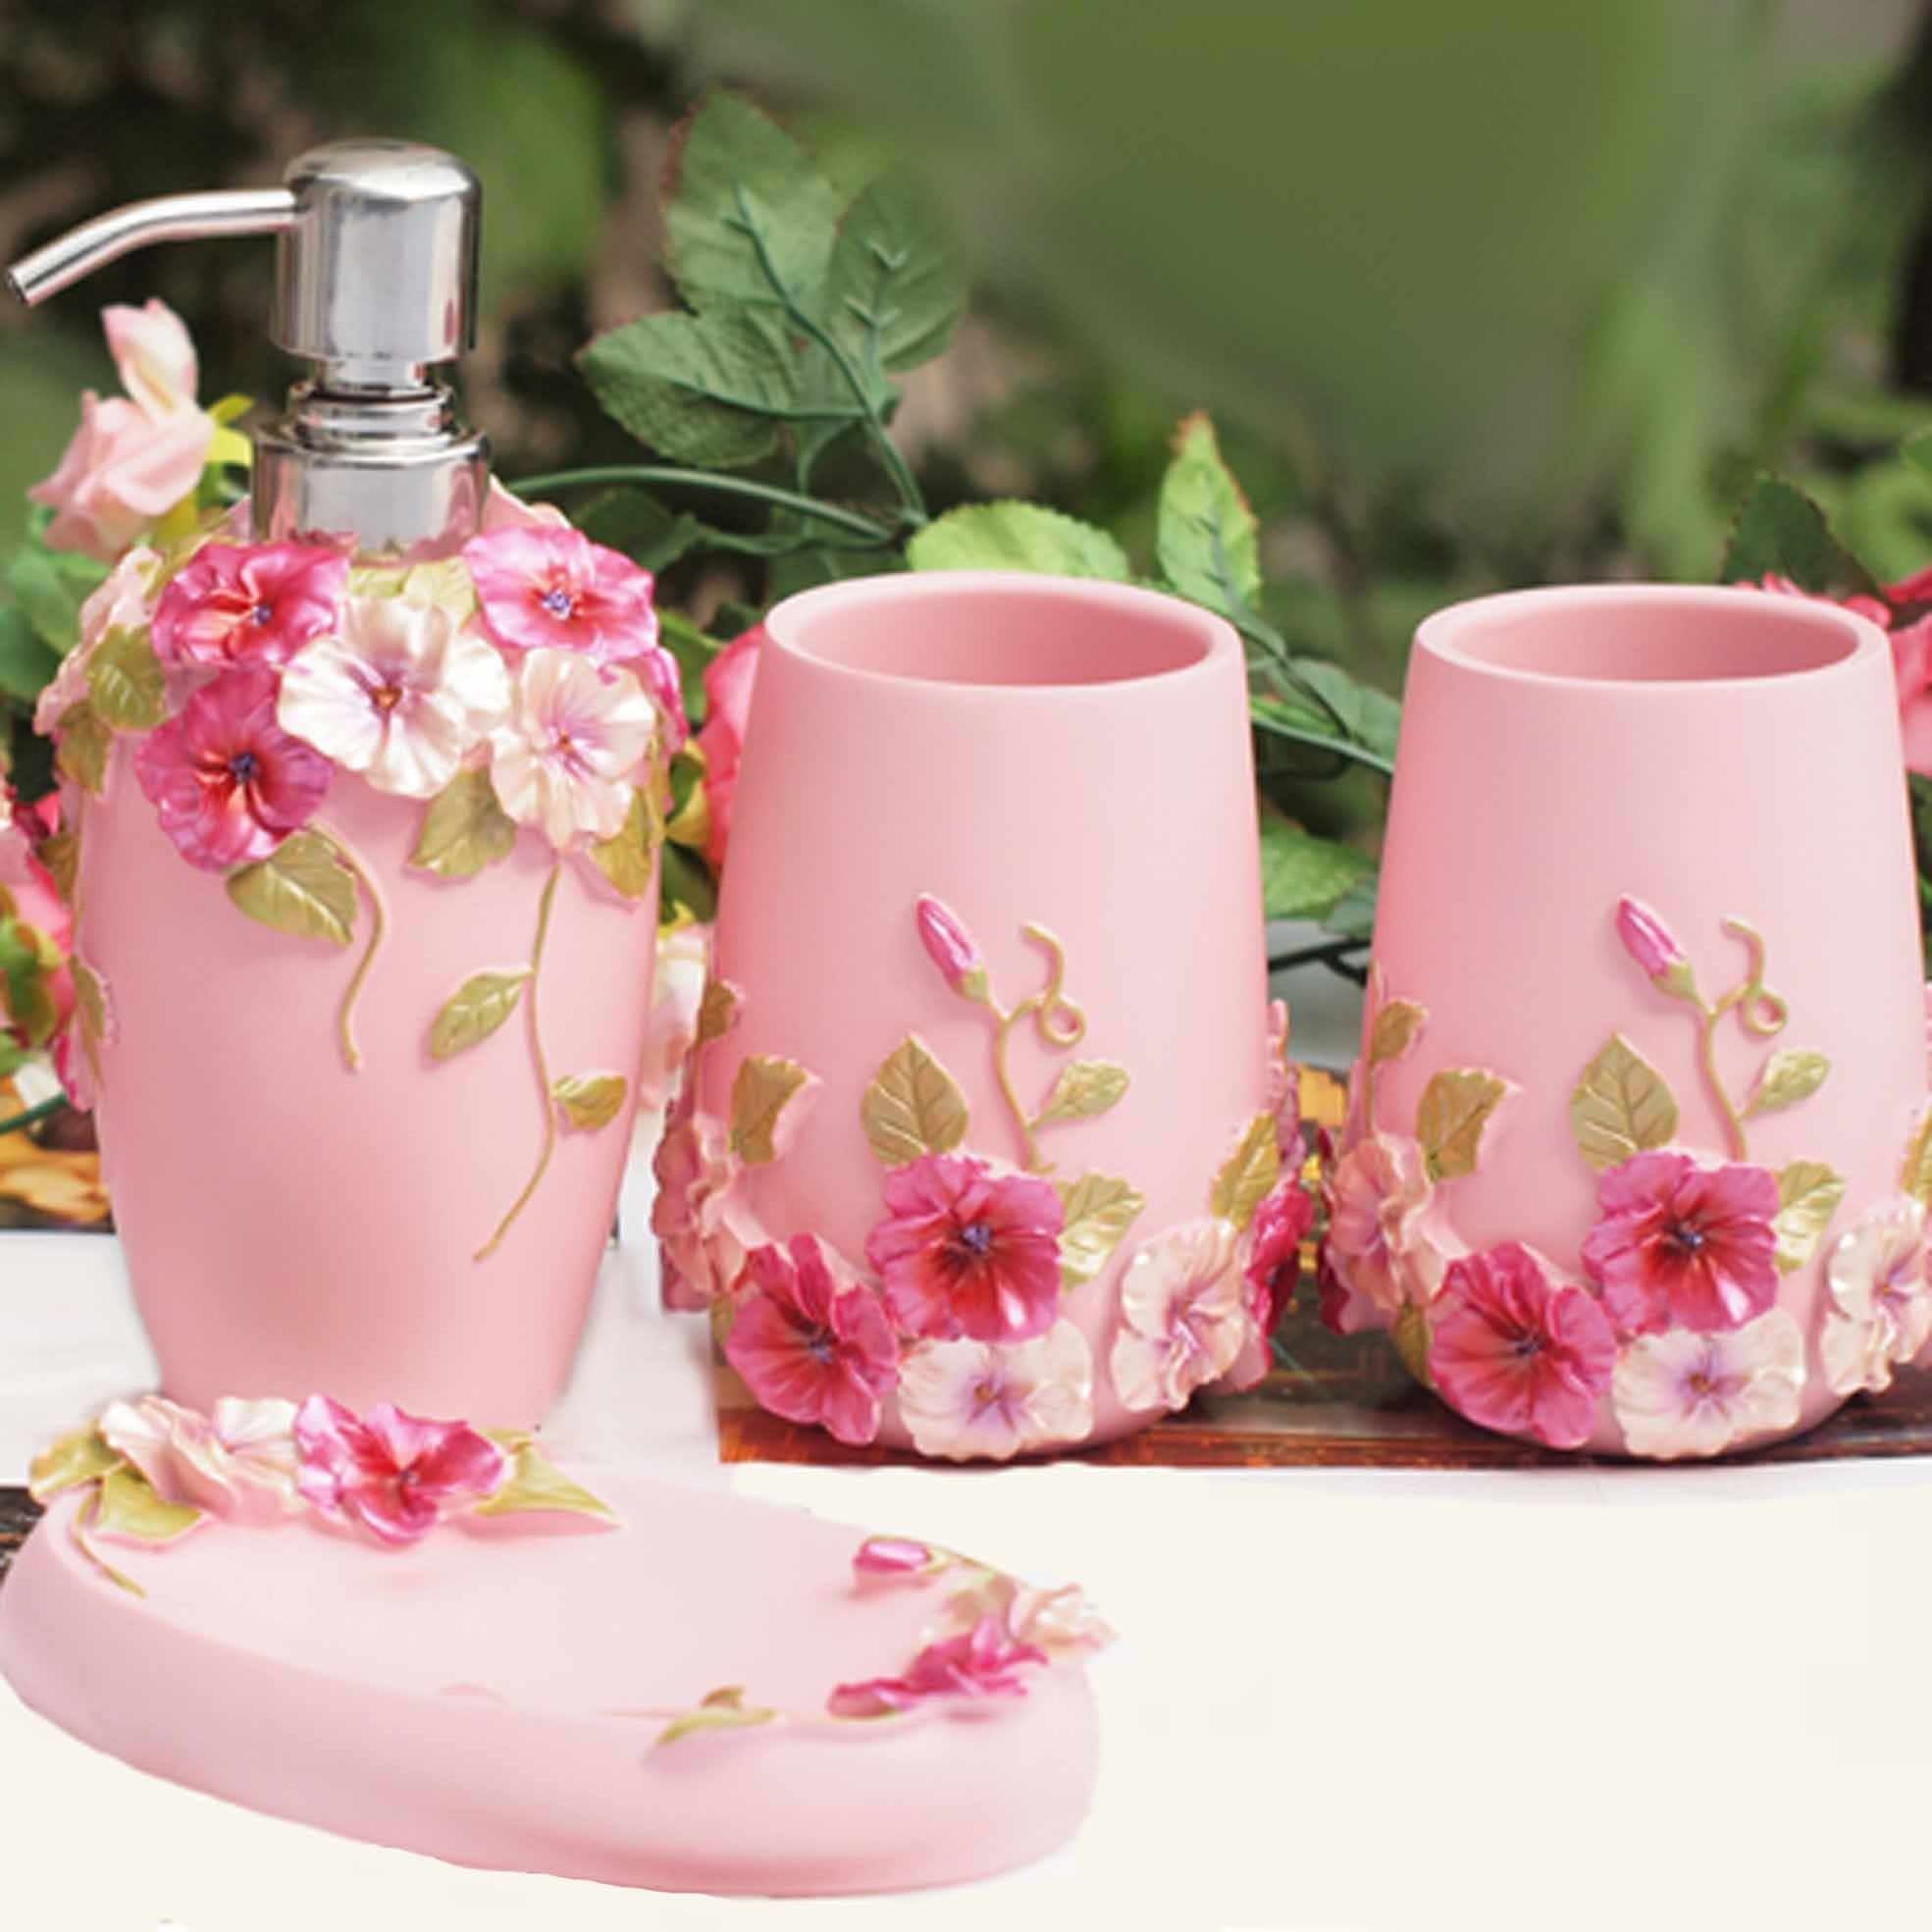 Best ideas about Shabby Chic Bathroom Accesories . Save or Pin shabby chic pink bathroom set Now.